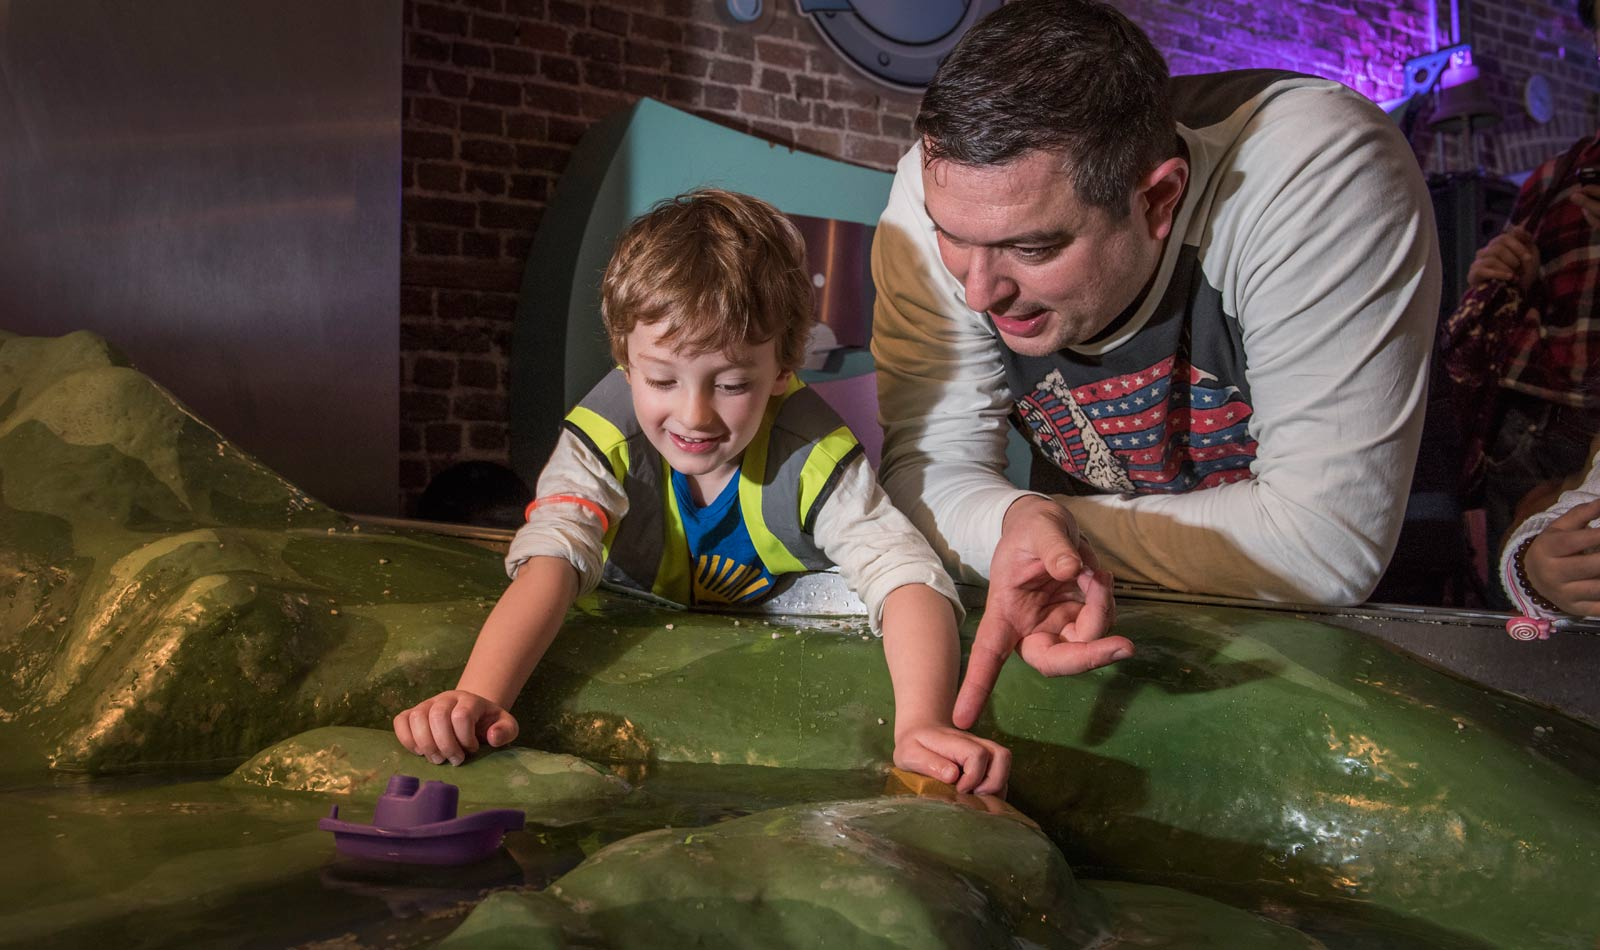 A child and his father play in the Foreshore Find play area of the Mudlarks gallery.